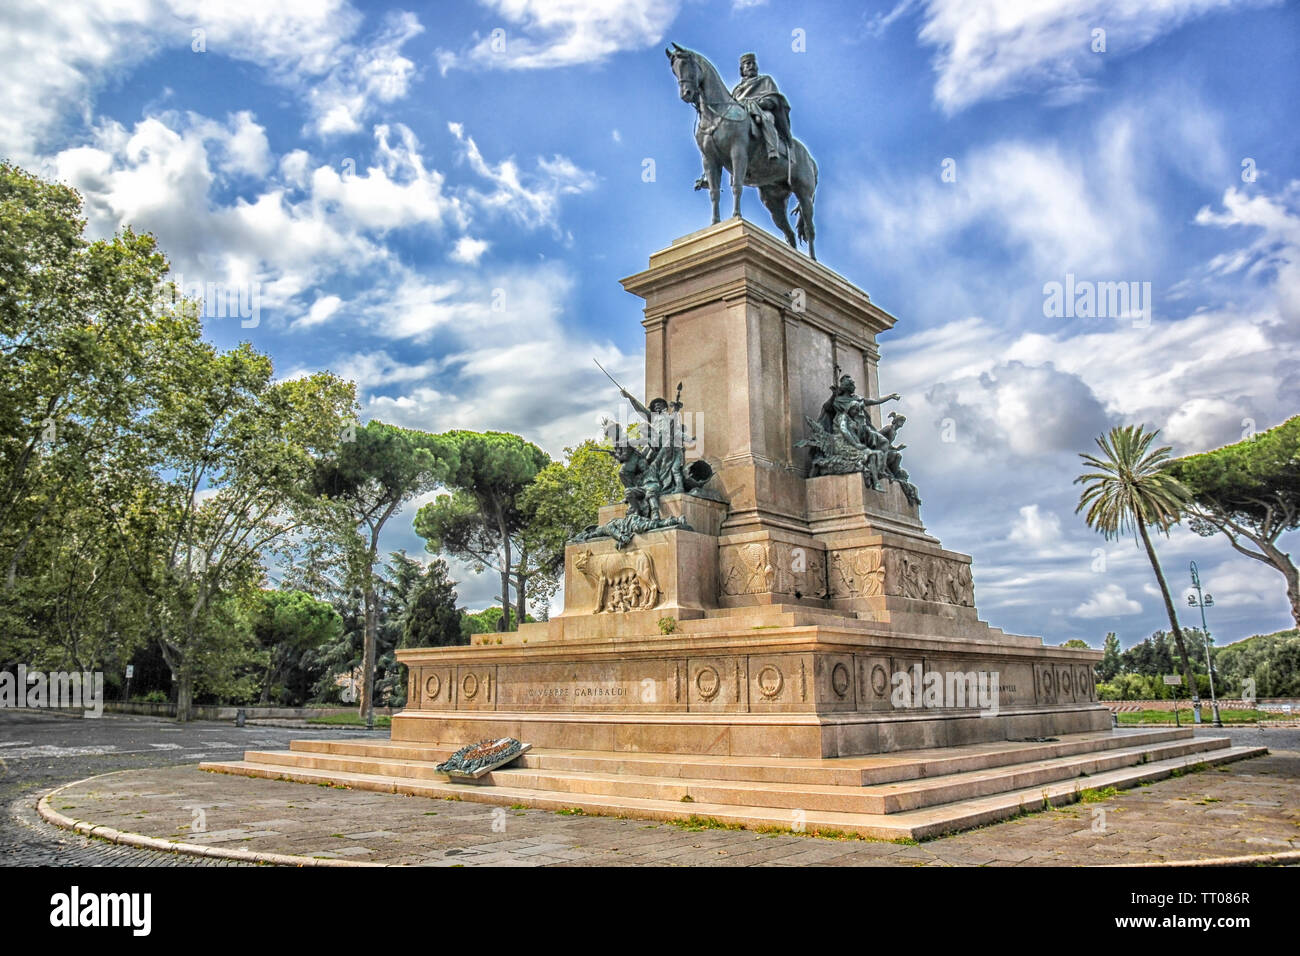 Monument Giuseppe Garibaldi Rome Italy Stock Photos